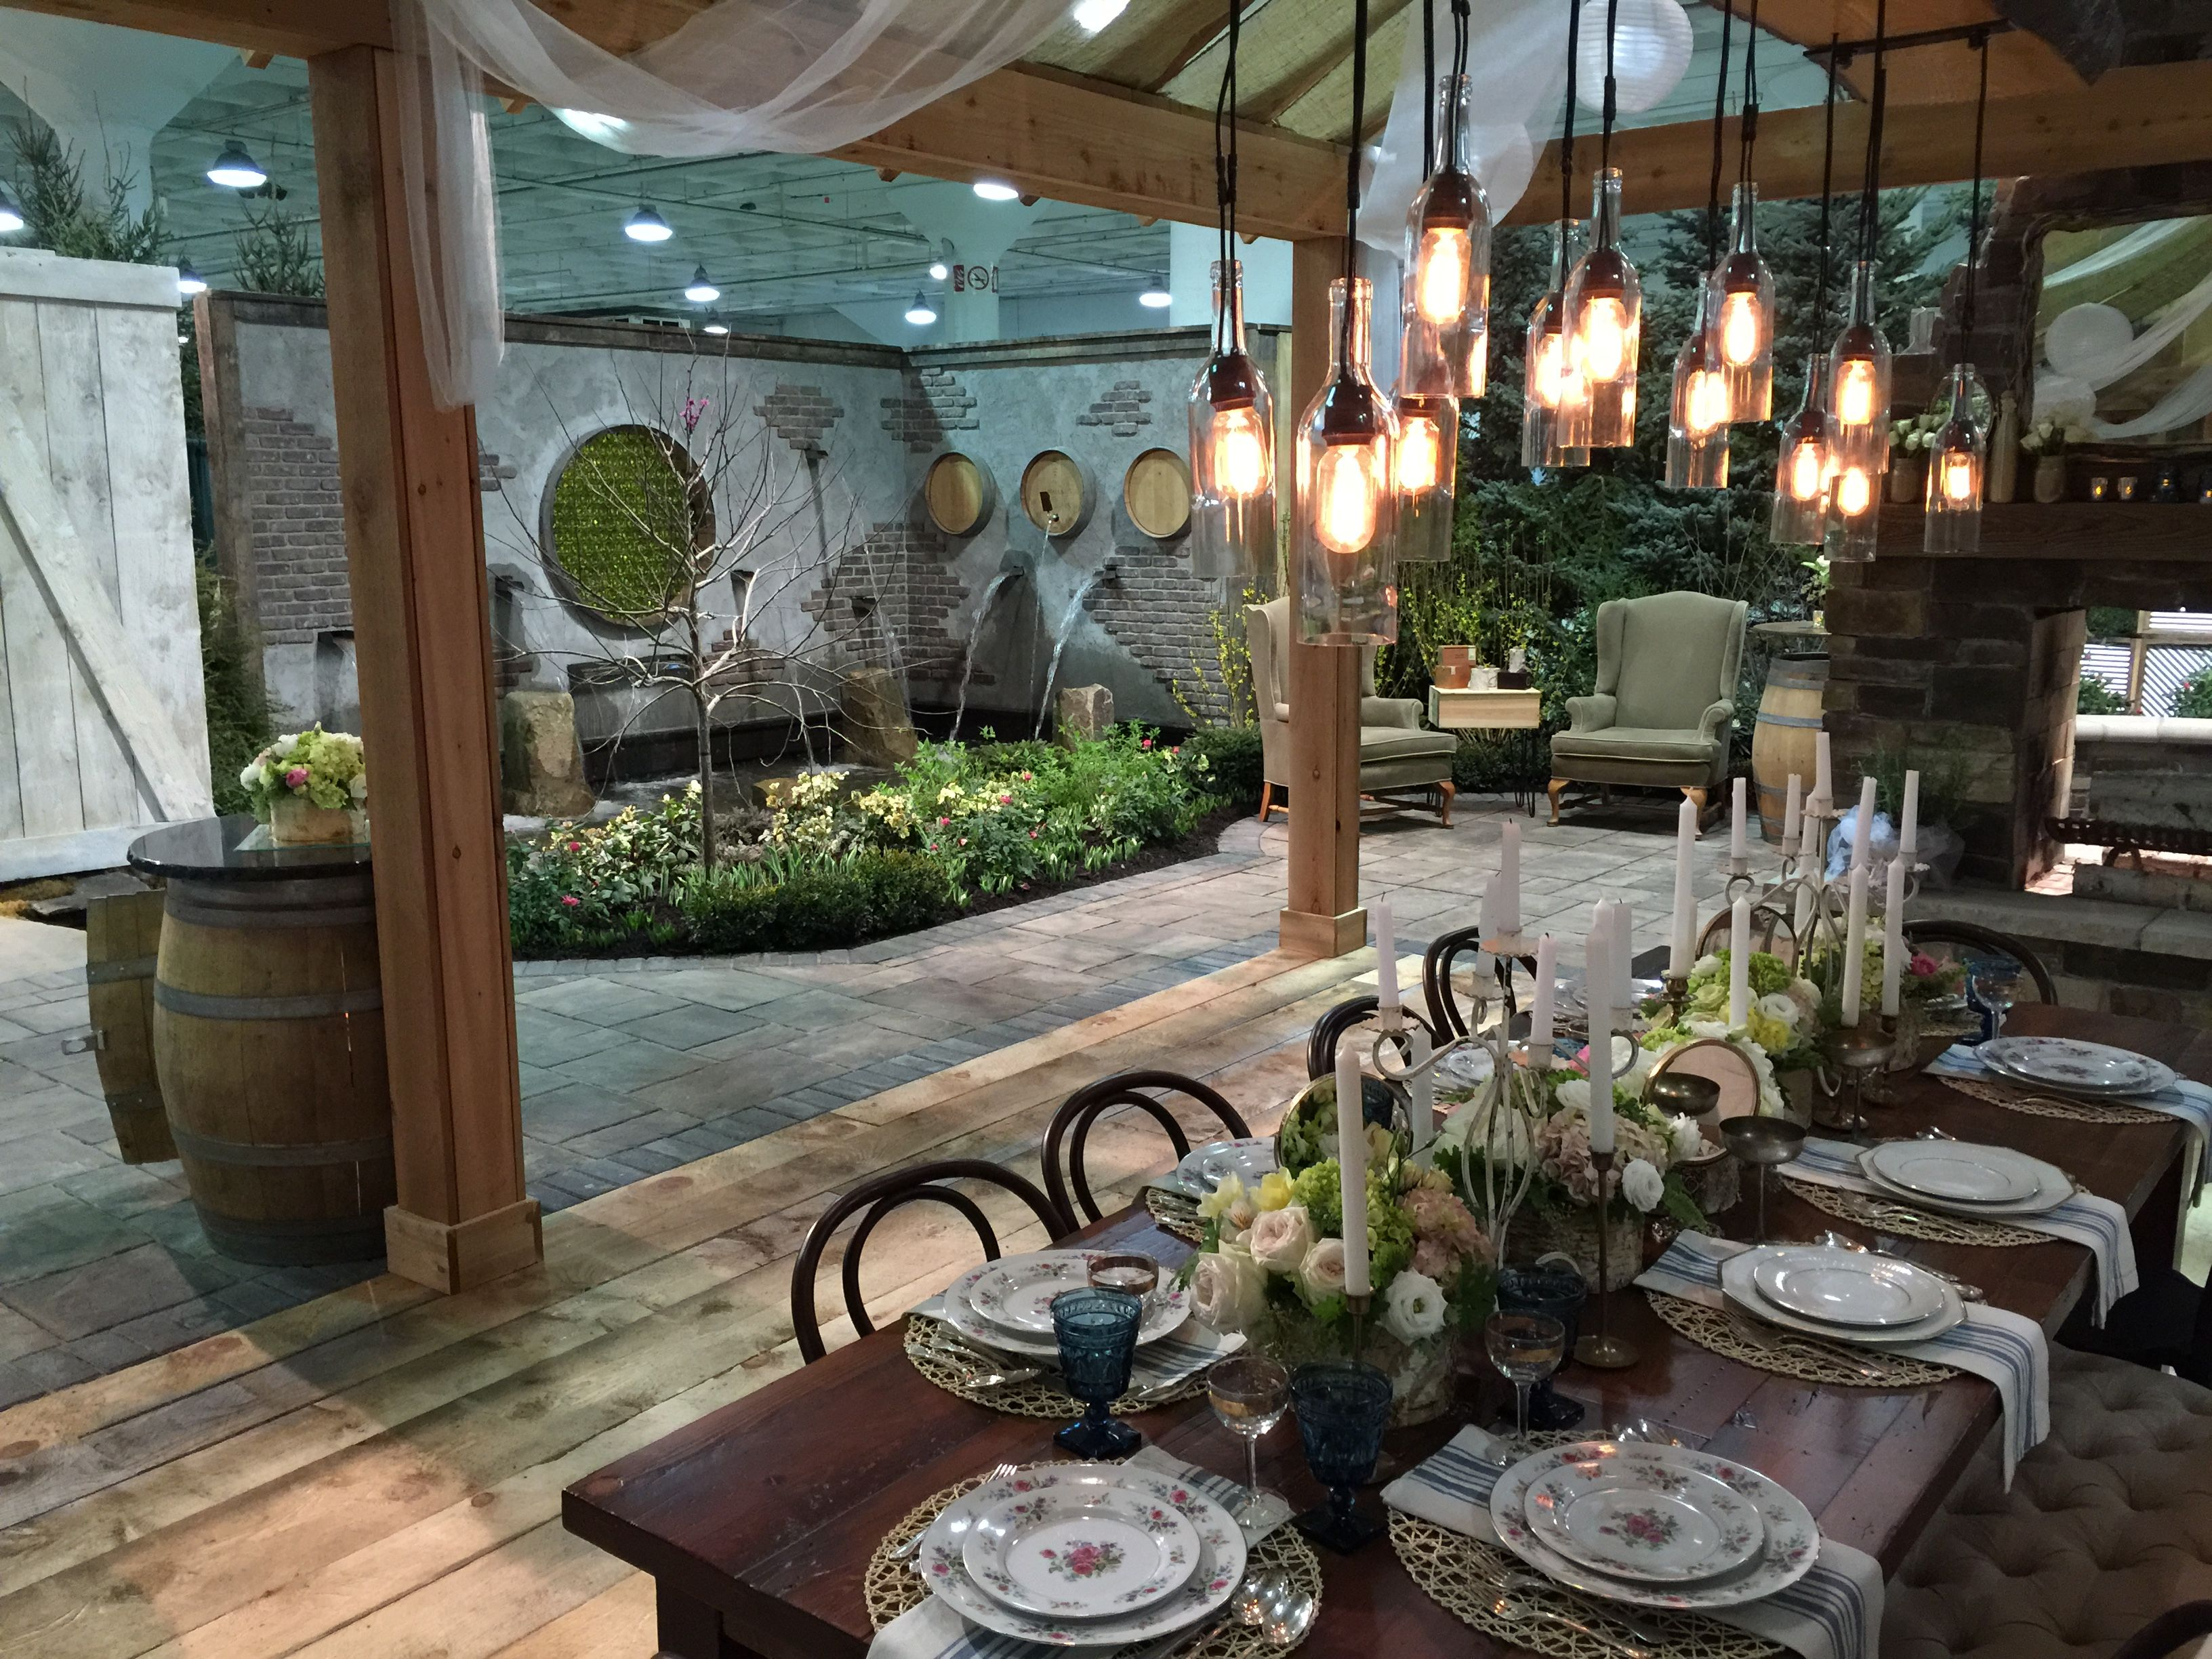 Now At The IX Center: Cleveland 2016 Home And Garden Show Just Started! Here